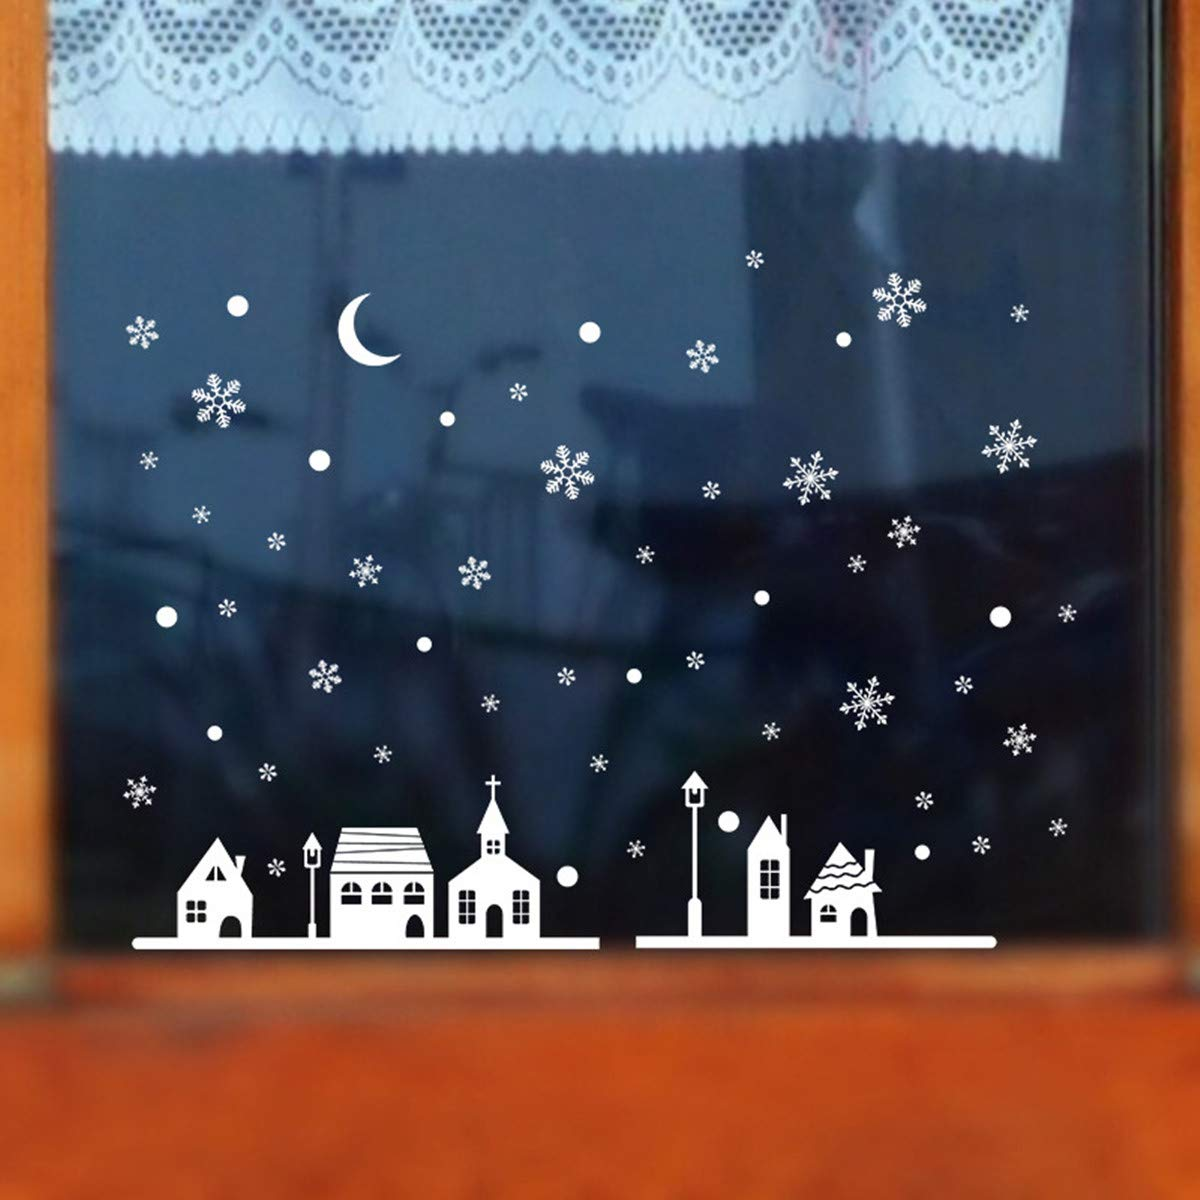 Christmas Window Decals PVC Wall Stickers Snowflakes Clings Xmas Kids Room Home Shop Decoration - Non-Toxic - Waterproof - Viahwyt (B) A96